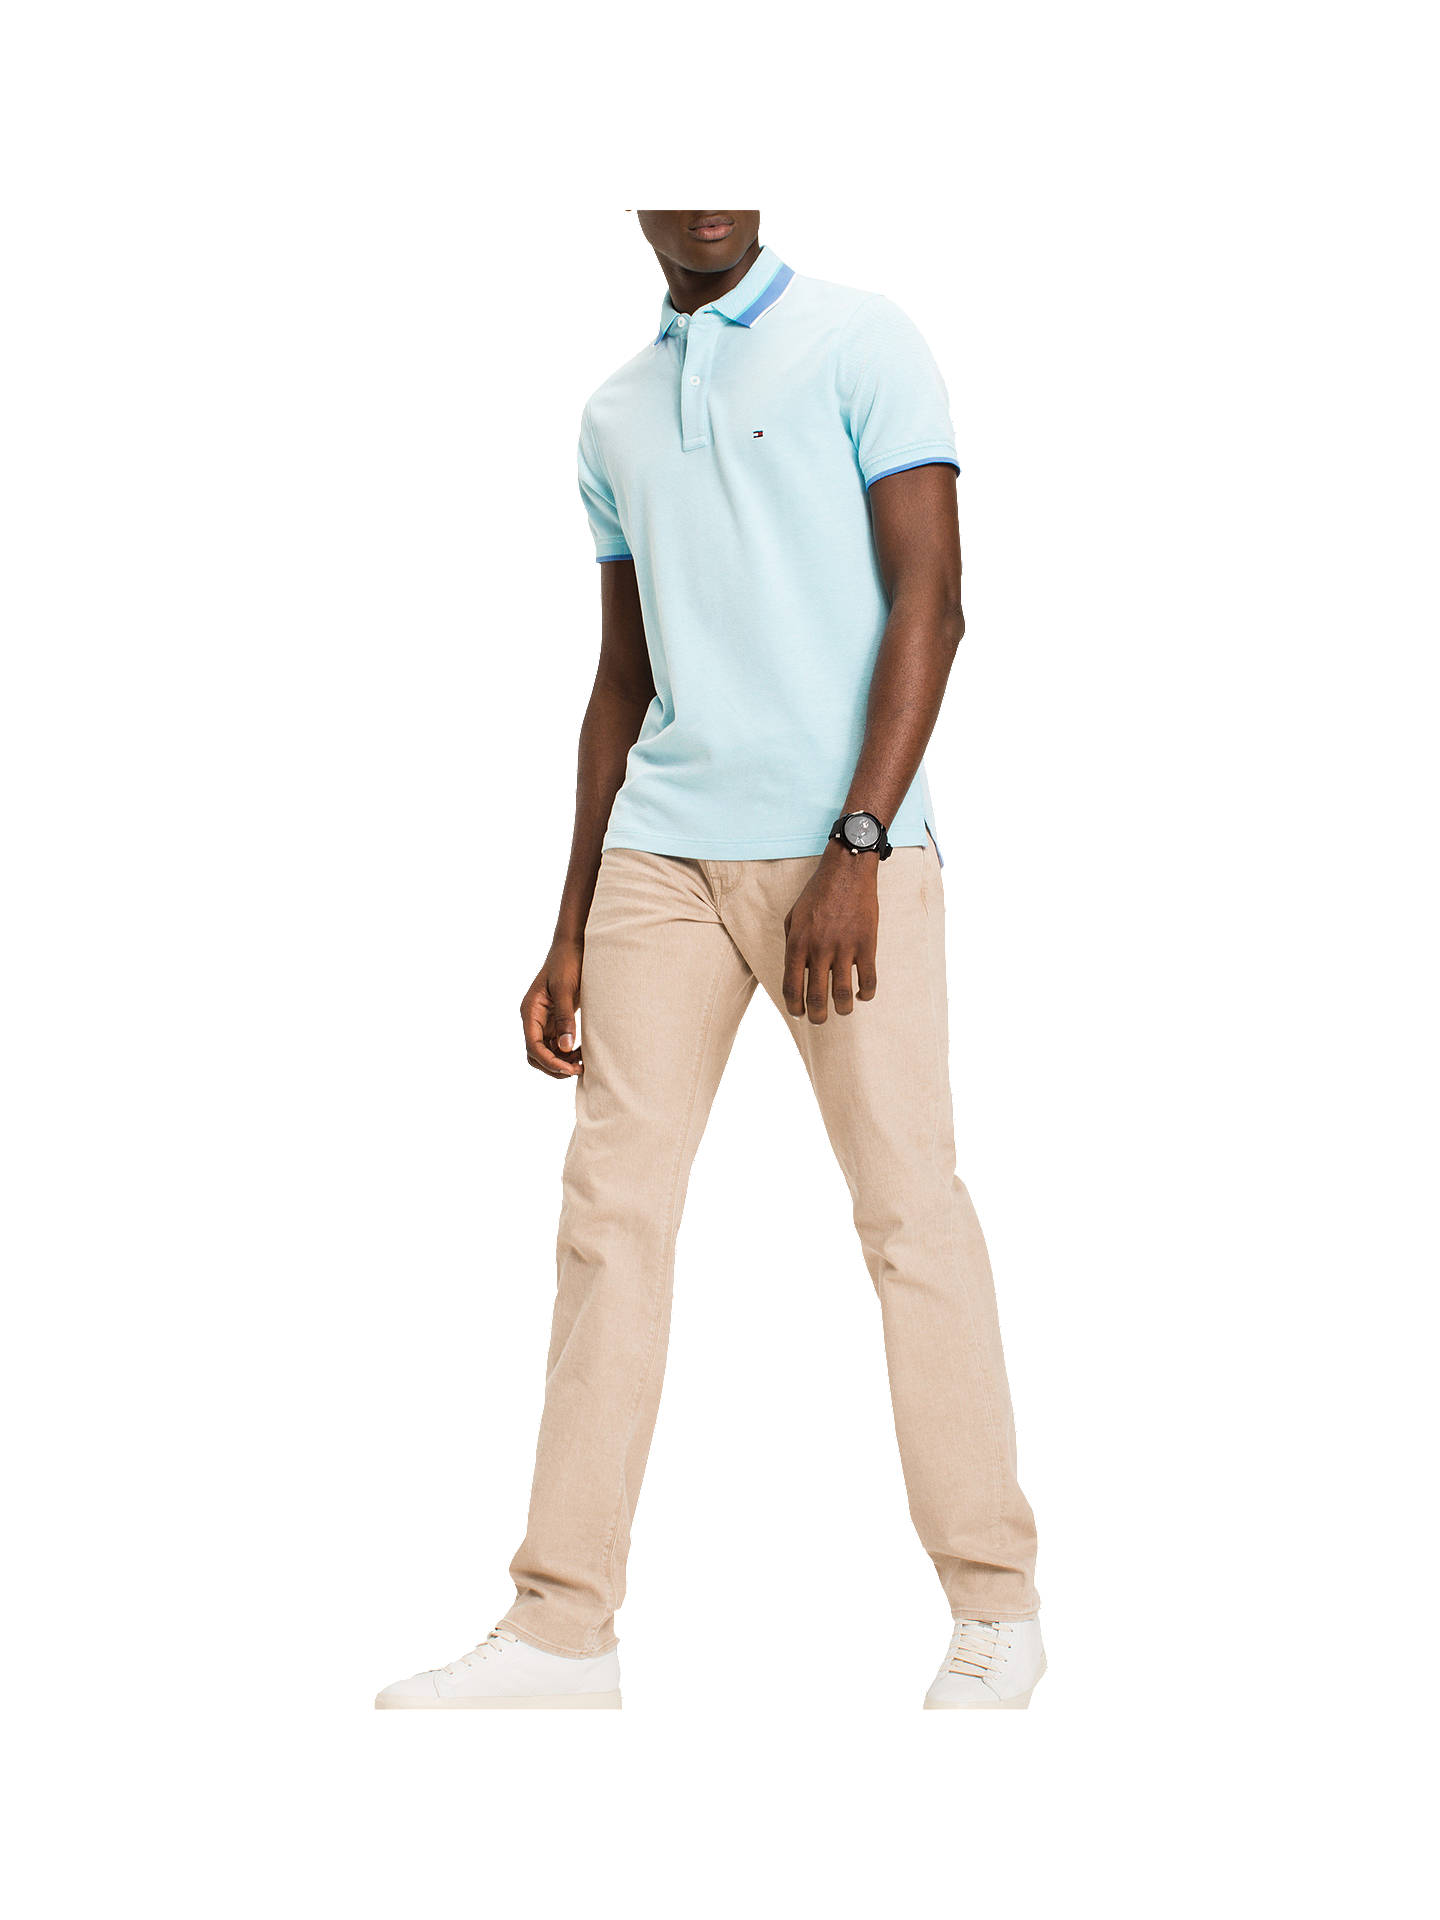 b227123c Buy Tommy Hilfiger Oxford Tipped Slim Polo Shirt, Capri, S Online at  johnlewis.